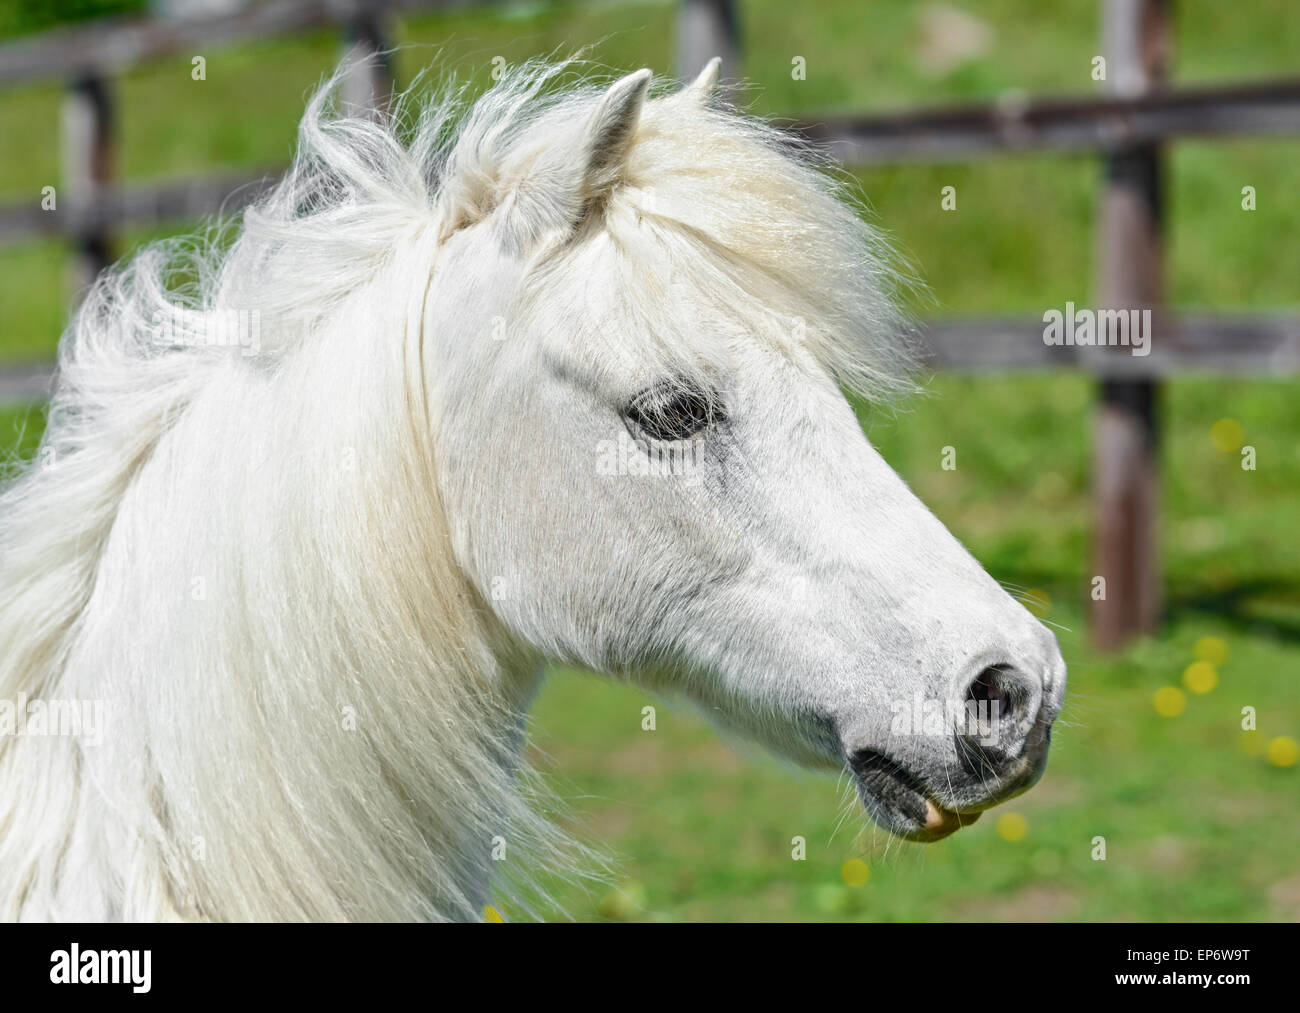 Head of a domestic white horse in a field